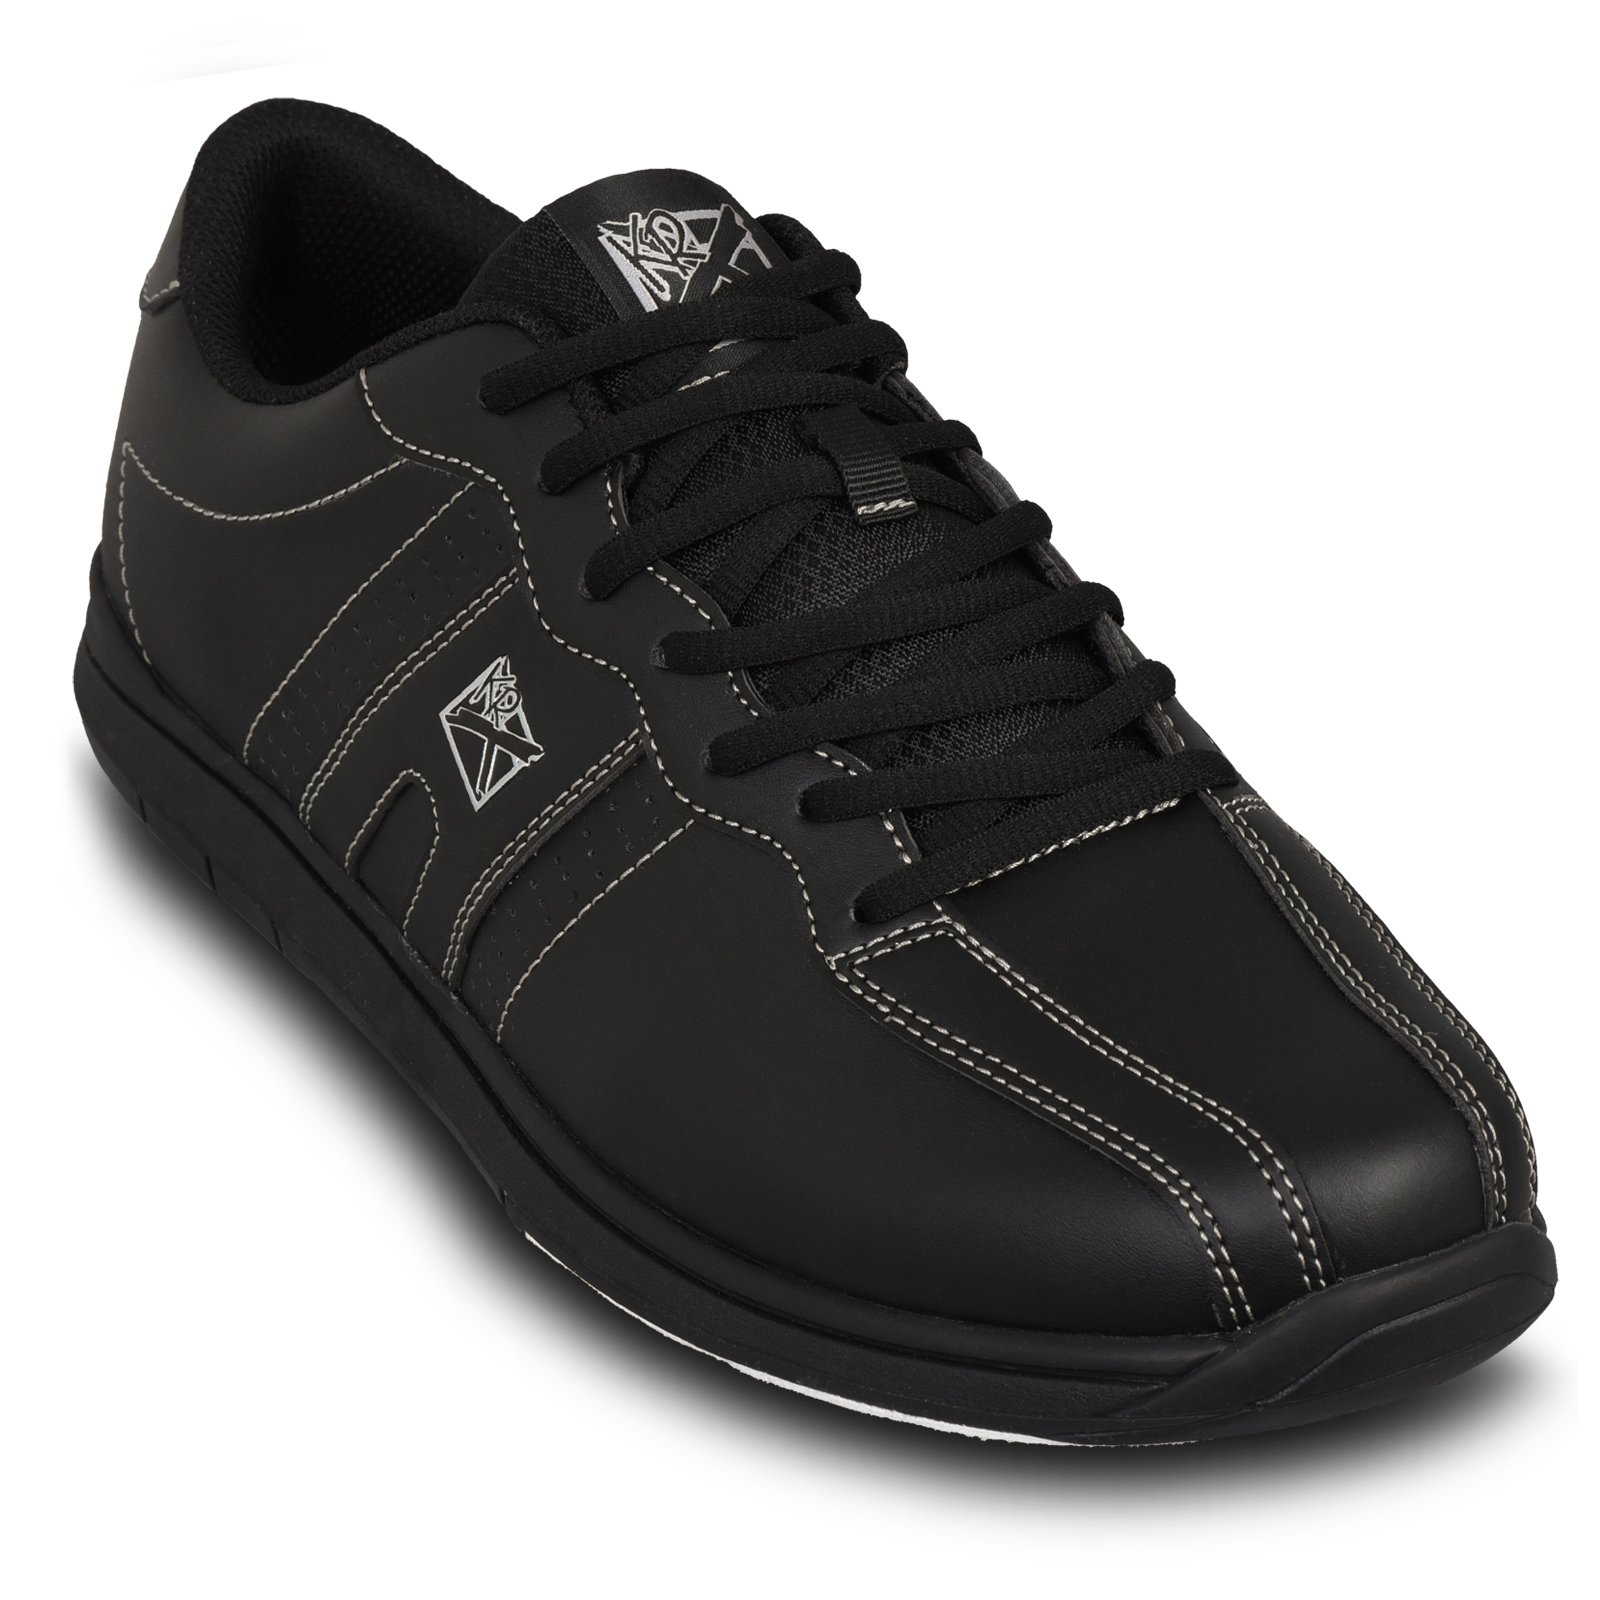 KR Strikeforce Men's O.P.P Wide Bowling Shoes, Black, Size 7.5 by KR Strikeforce (Image #2)